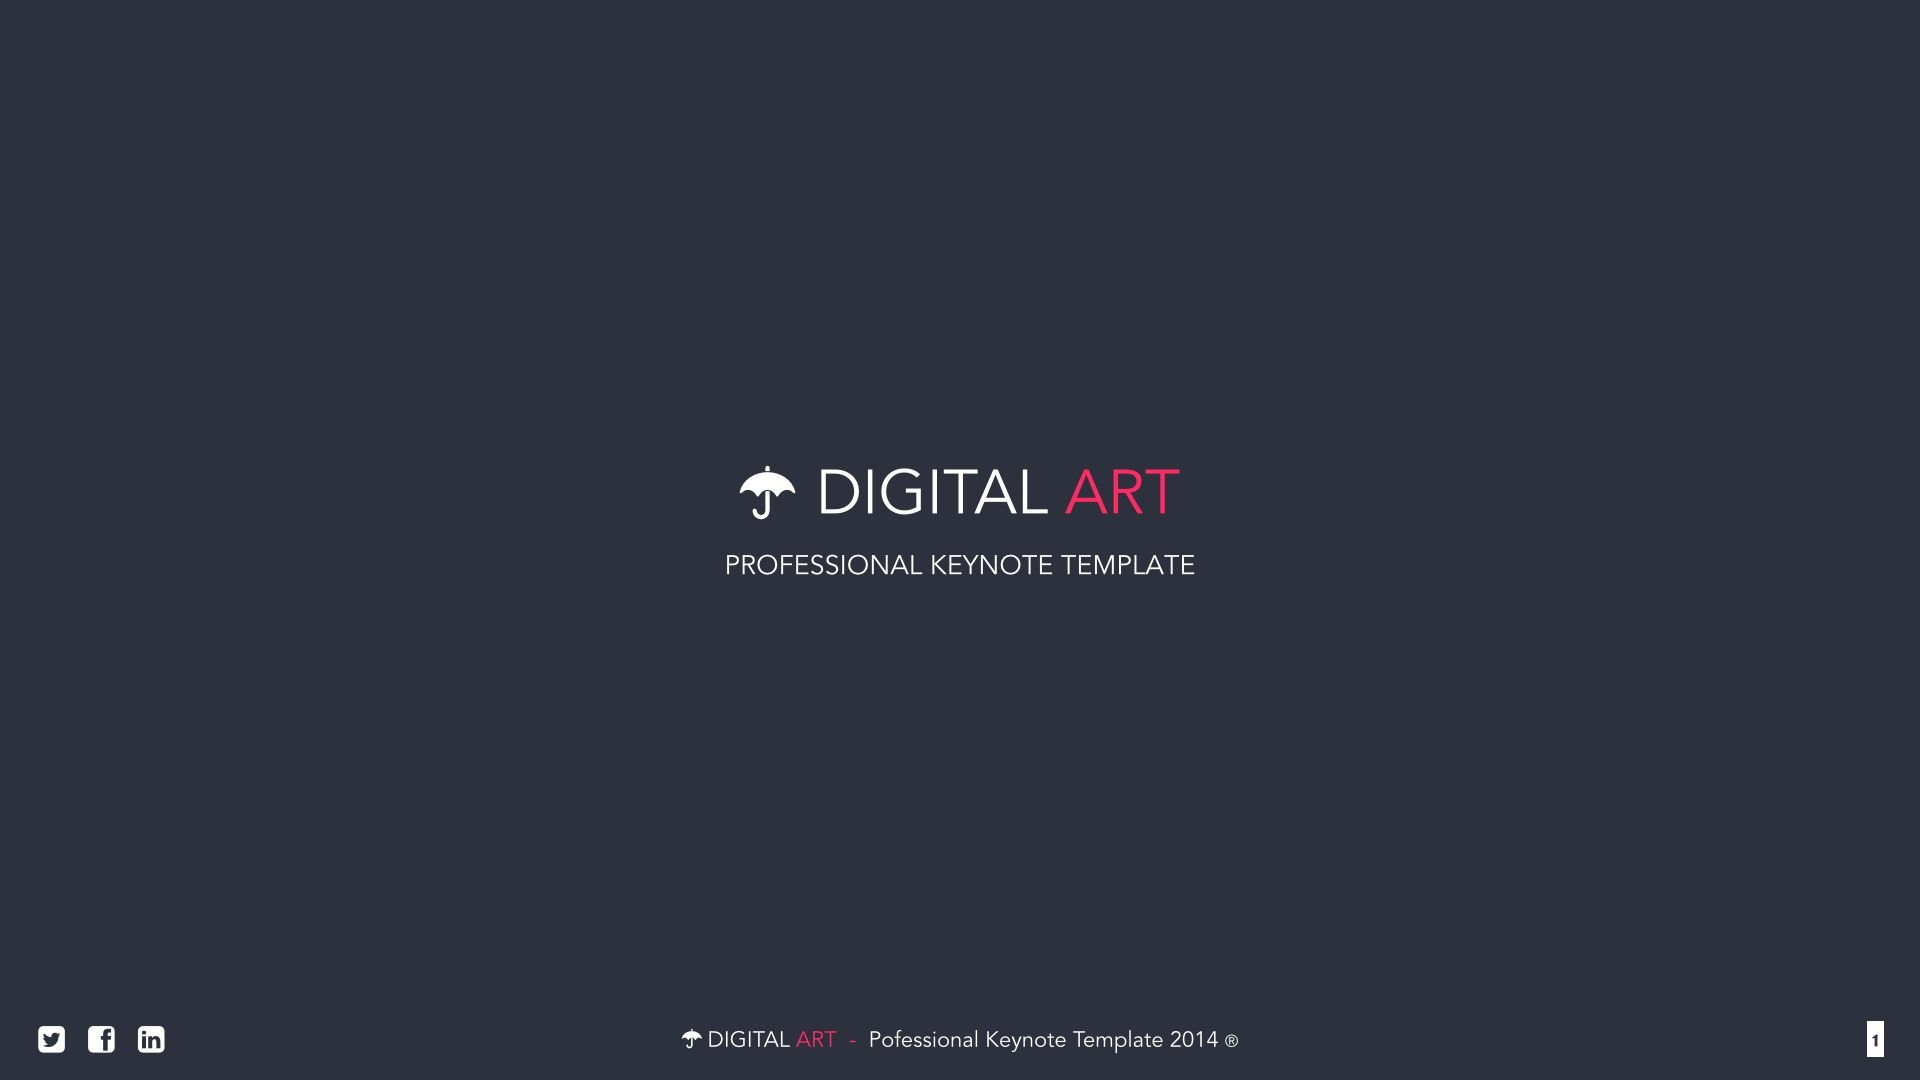 Digital art creative powerpoint template by vigitalart screenshotsdigital art darkdigital art dark001g toneelgroepblik